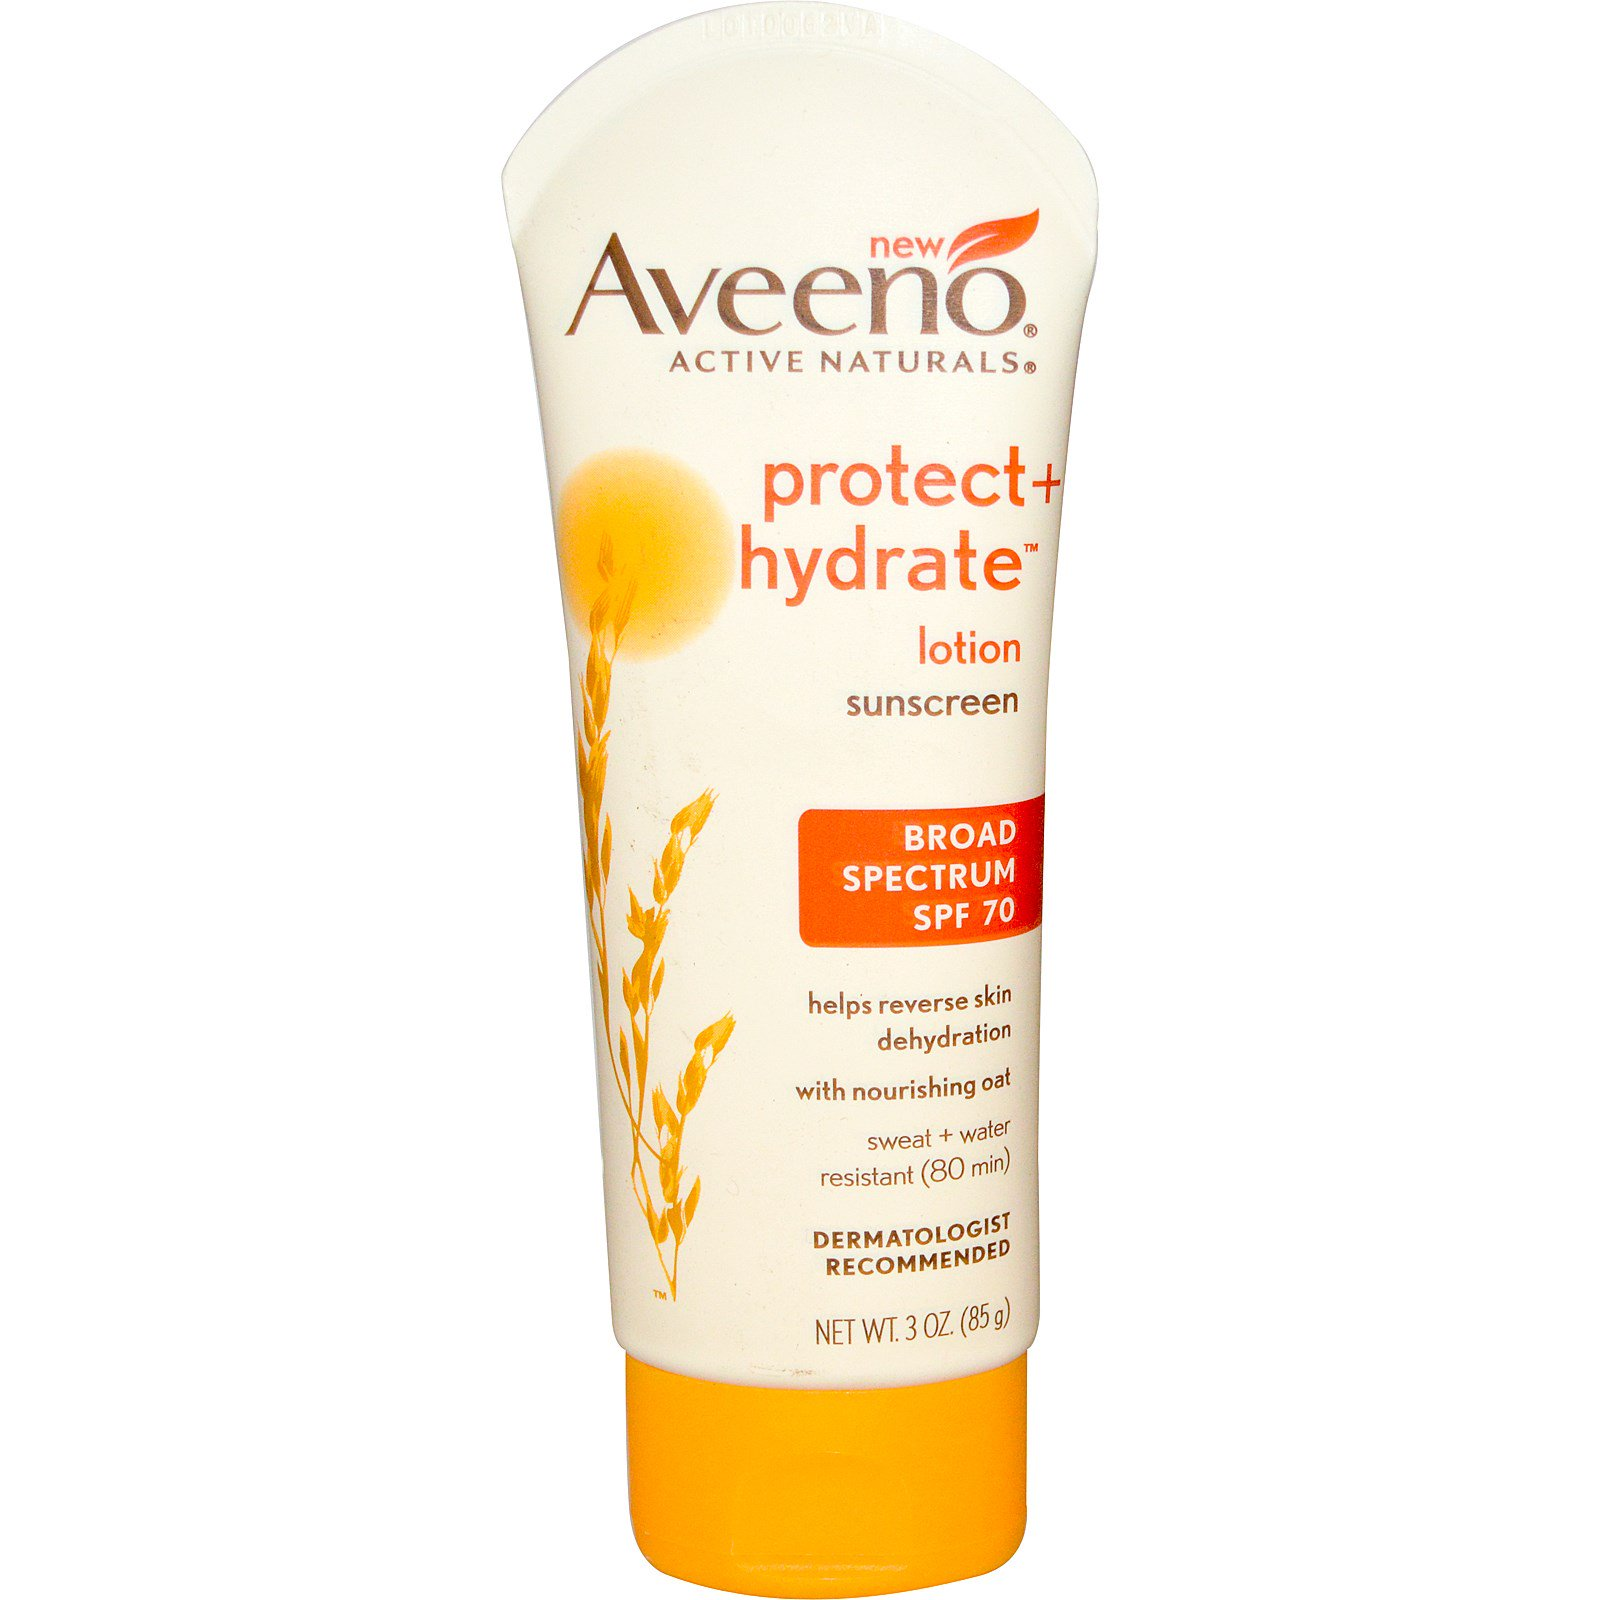 Image result for Aveeno Protect + Hydrate Lotion Sunscreen With Broad Spectrum SPF 70, 3 Oz